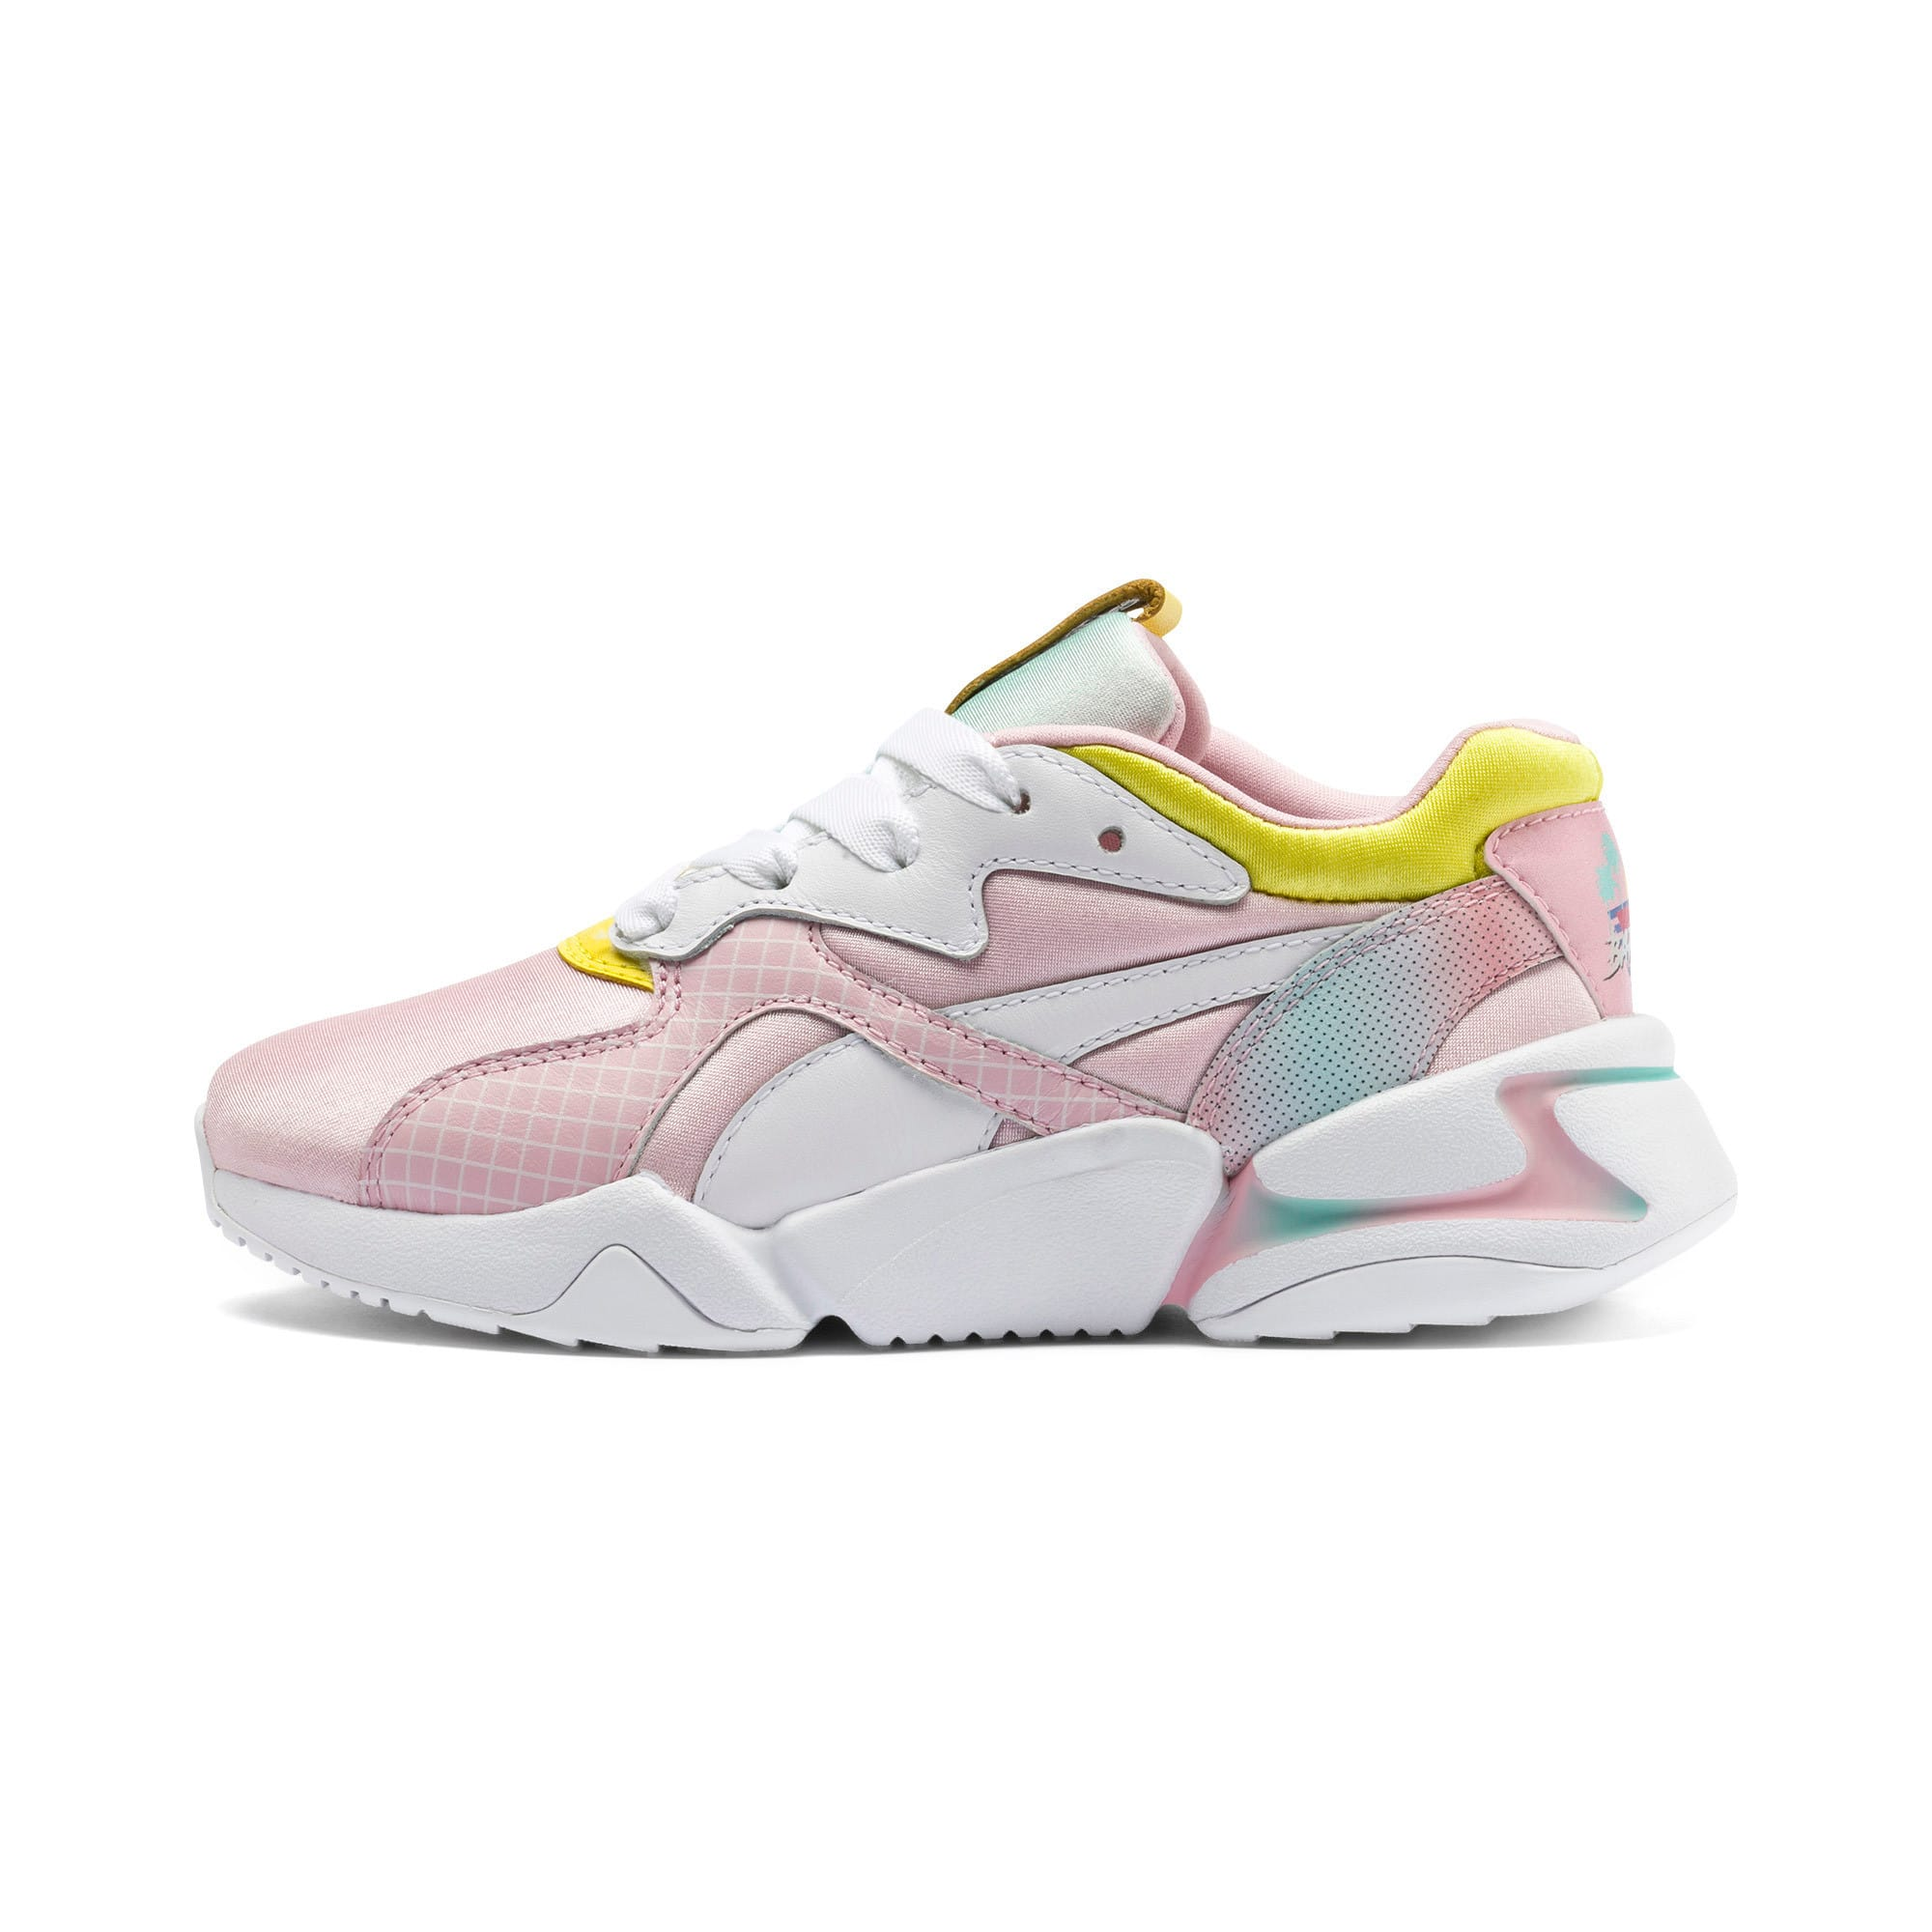 Thumbnail 1 of Nova x Barbie Little Kids' Shoes, Orchid Pink-Puma White, medium